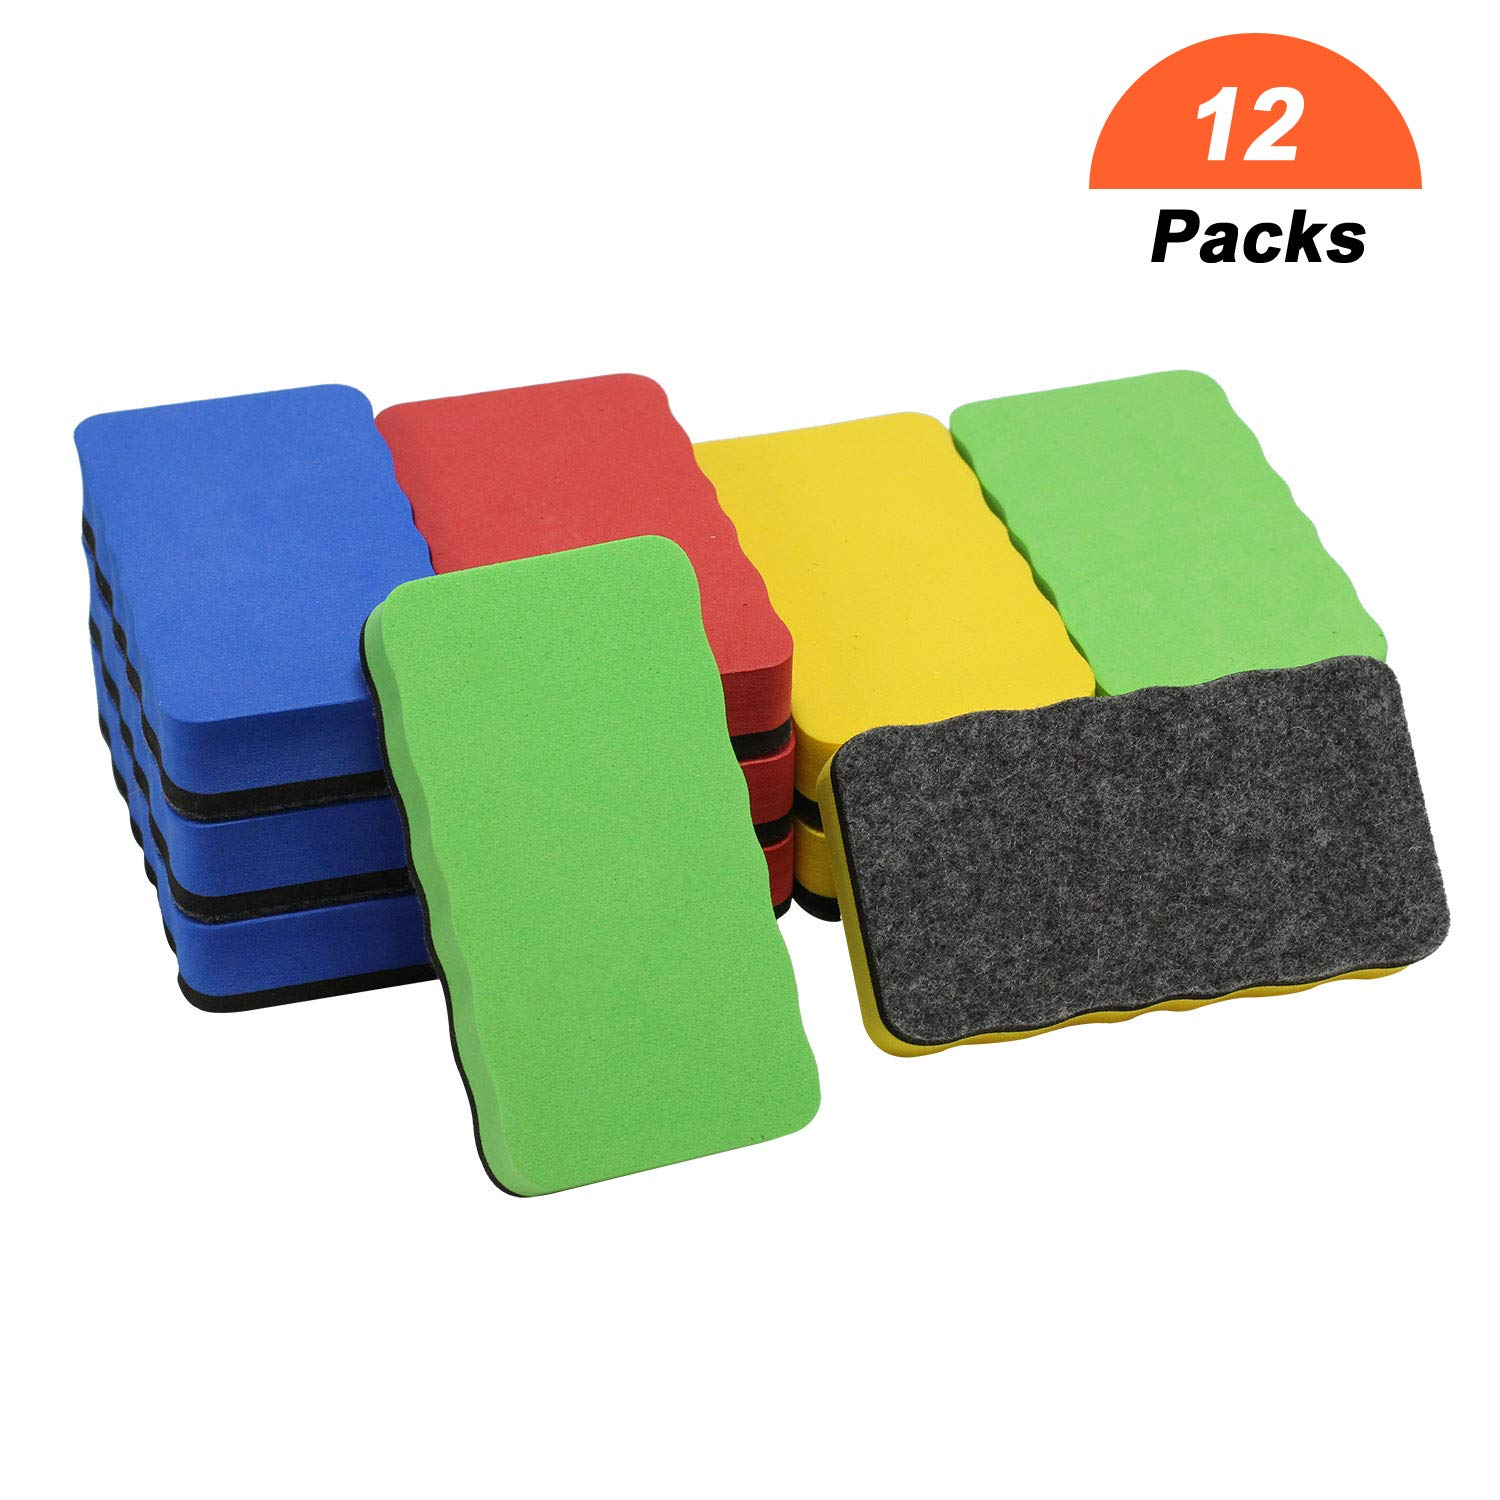 Dry Erase Erasers,12 Packs Dry Whiteboard Eraser,Magnetic Eraser Chalkboard White Board Erasers for Home Classroom Office Use (4.2''x2.1''x0.8'')